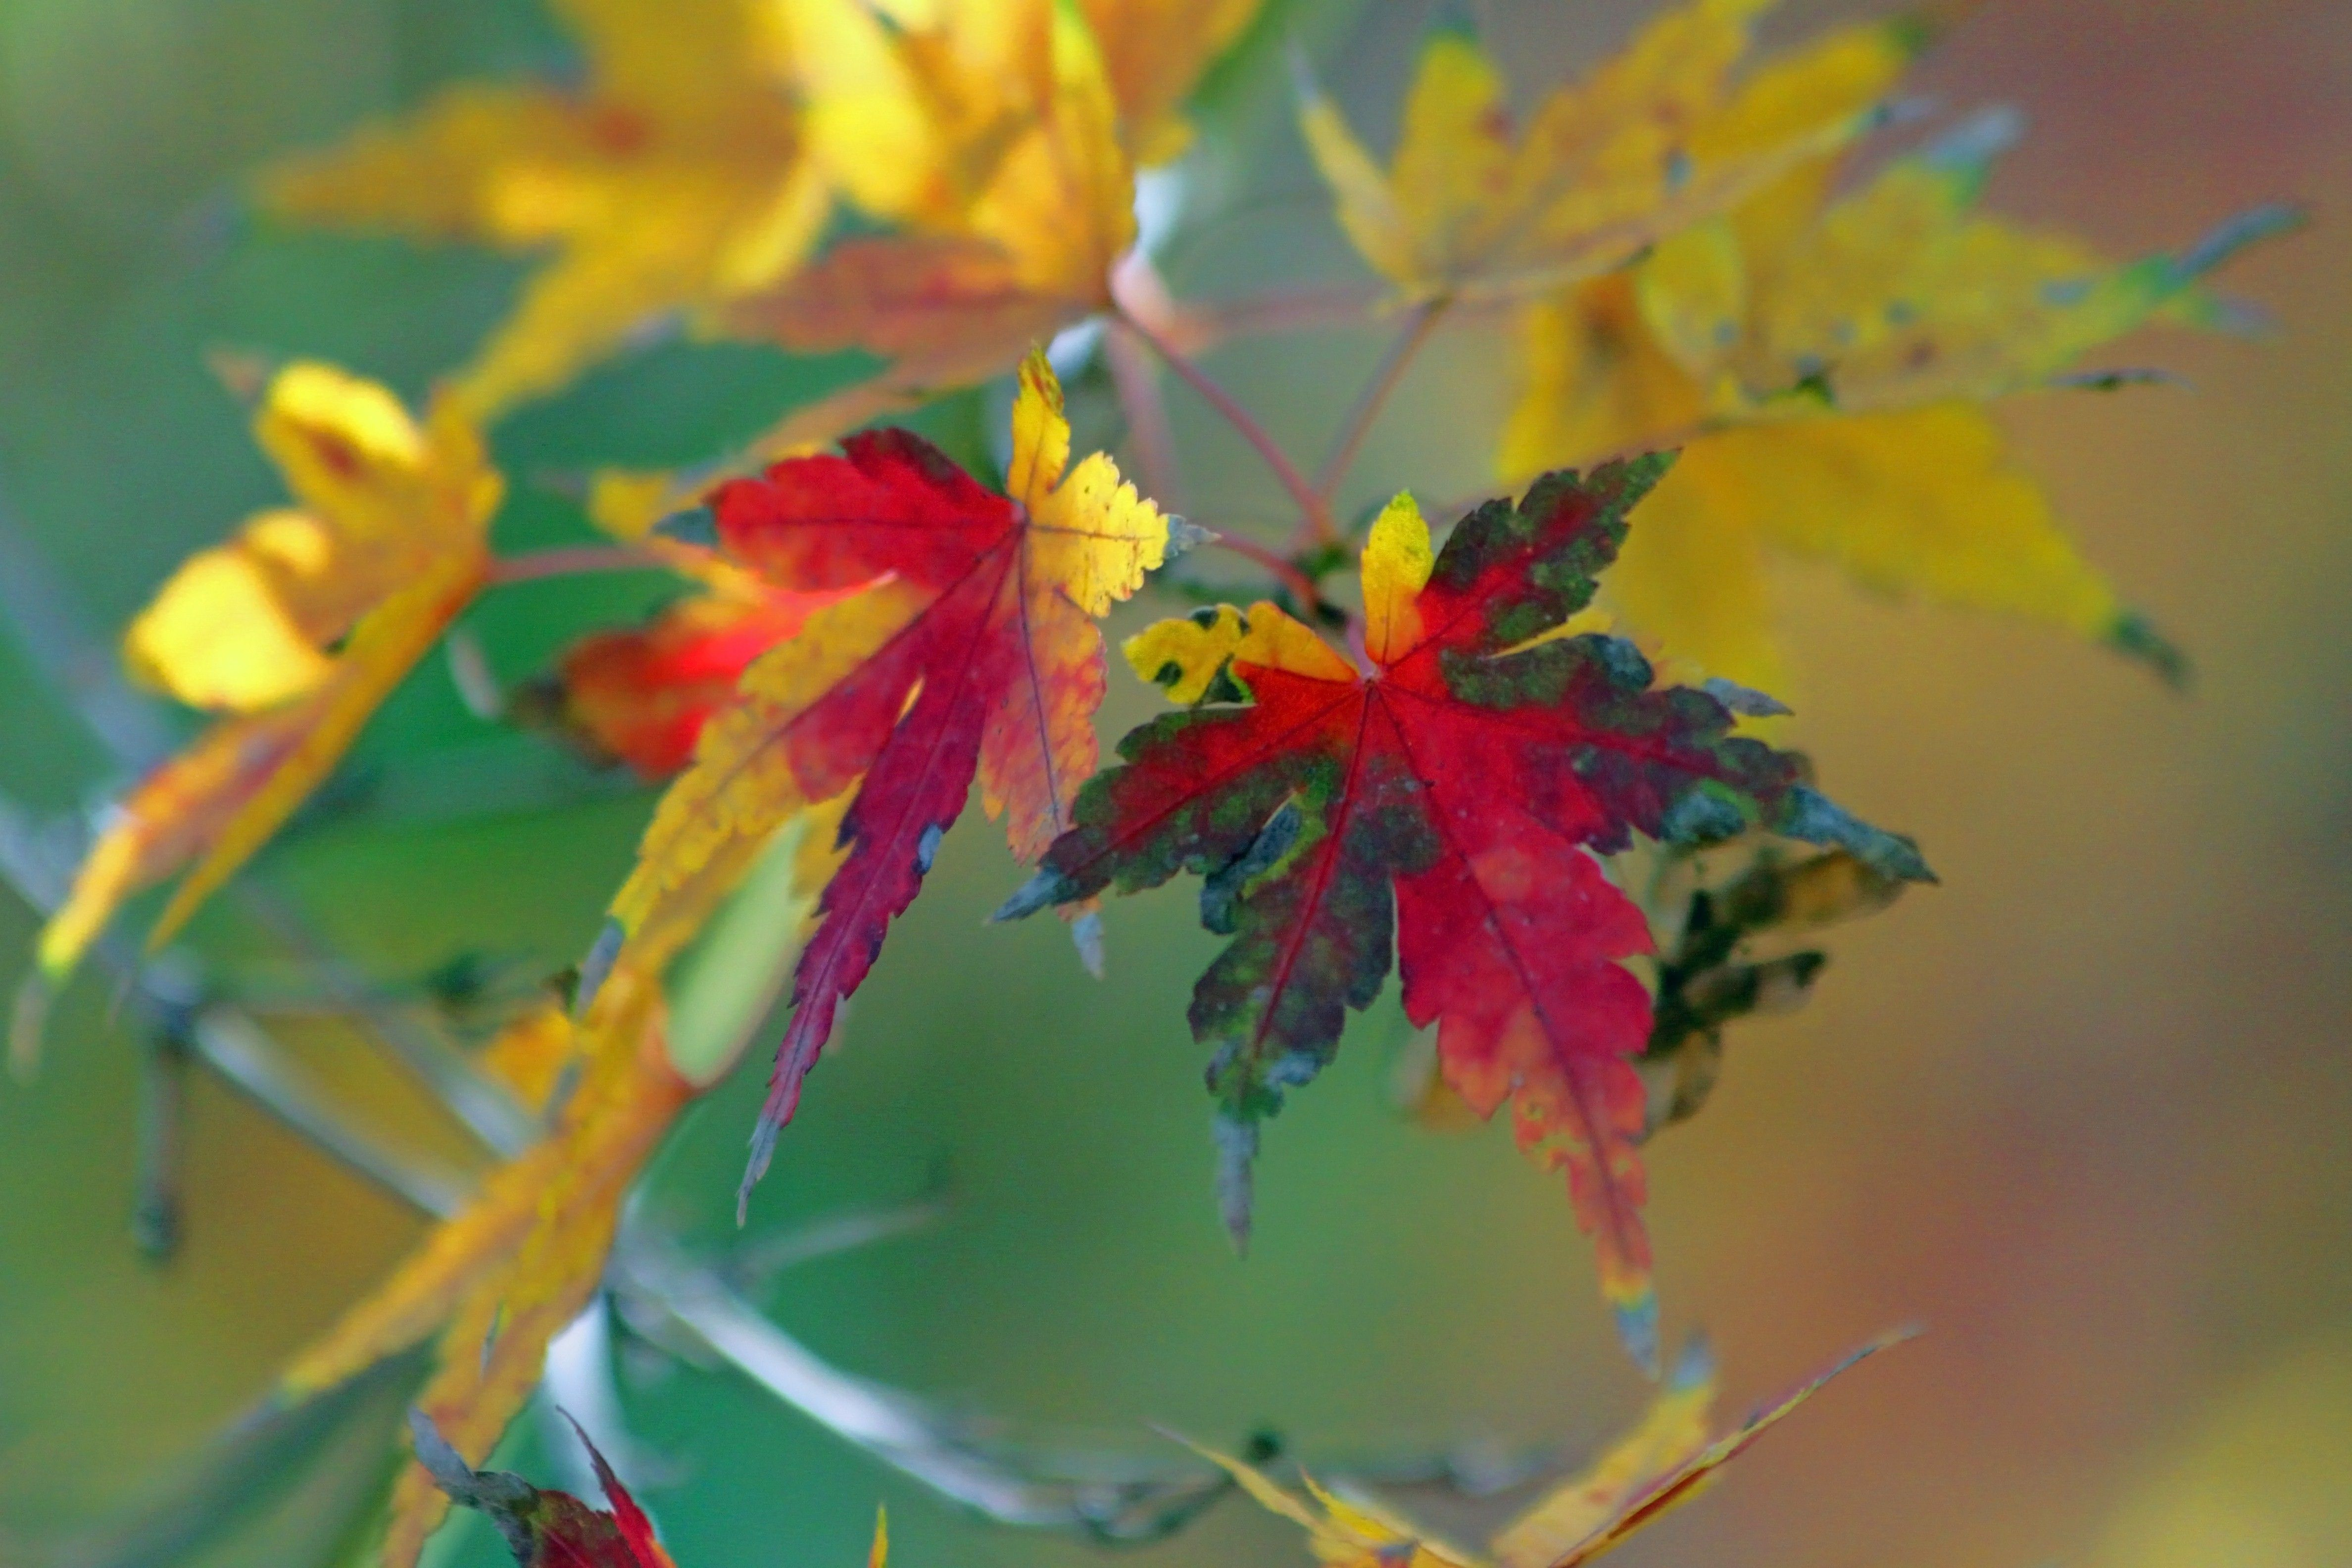 A branch of Japanese maple leaves changing colors in the fall.